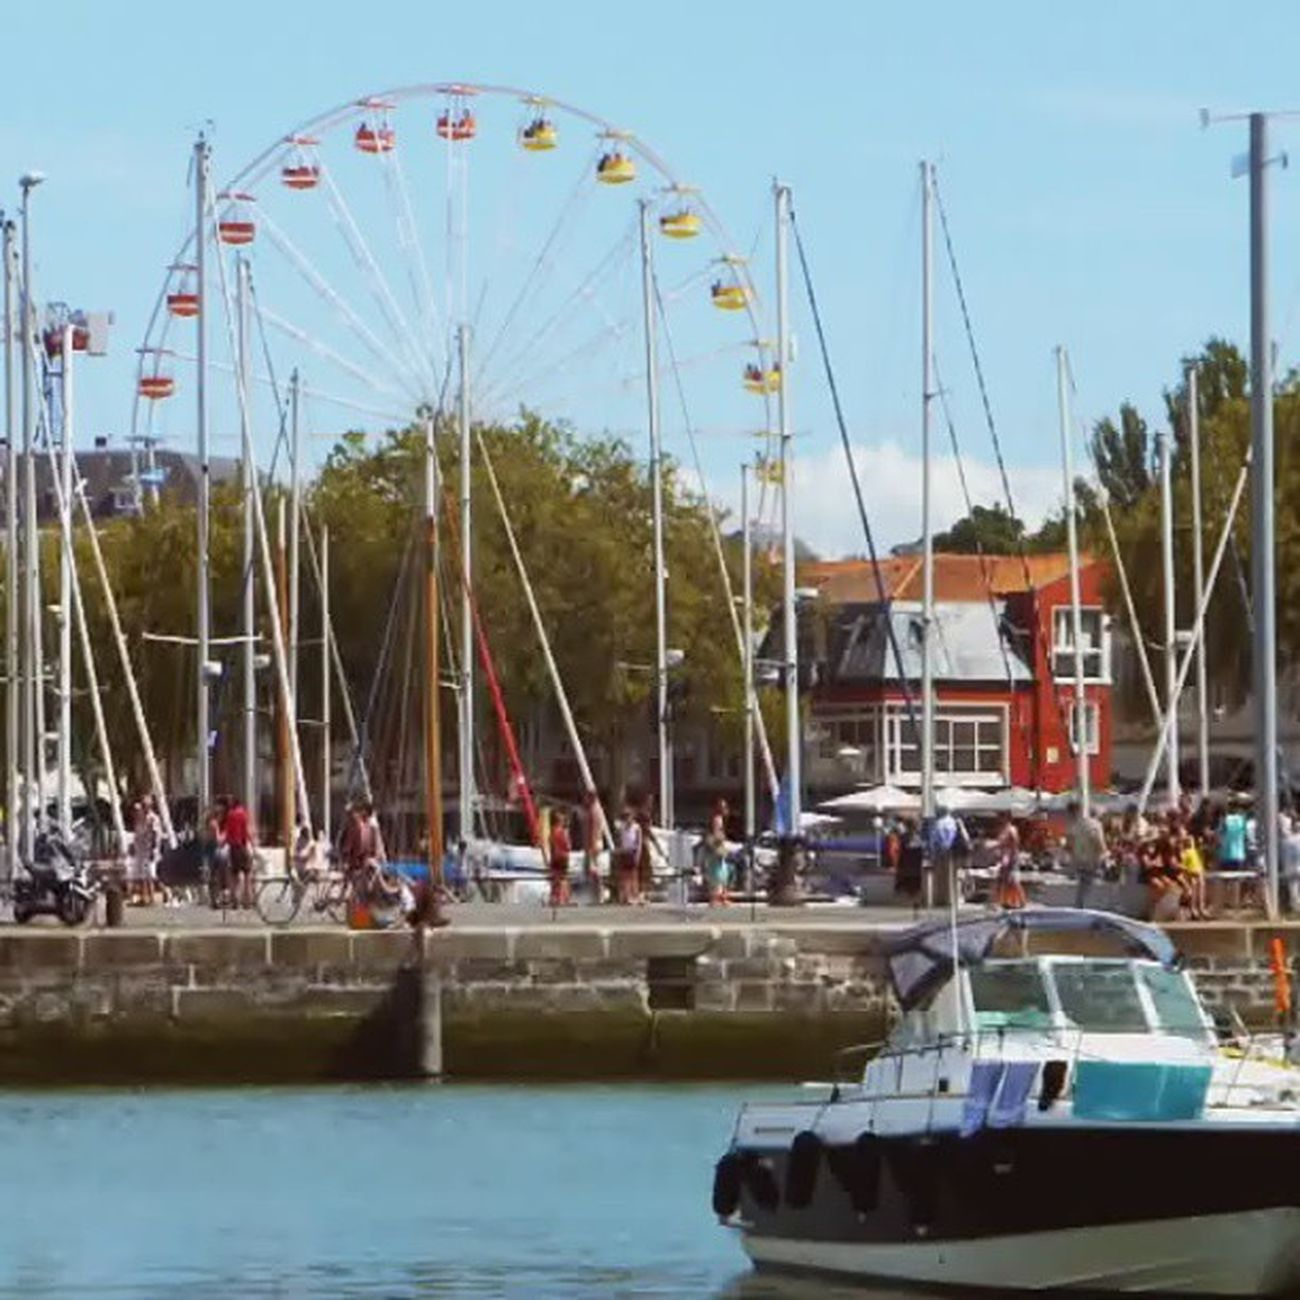 La grande roue #larochelle #poitoucharentes Myfirstvideo Videogramoftheday Larochelle Insta_pick_video Videoclip Gi_video Videoinstagram Hubvideo Instagramvideo Global_views_videoshot Videogram Igvideo Instavideo Poitoucharentes Igersfrancevideo Worldvideos Insta_globalvideo Tribegram_video Perfectvideo Videooftheday